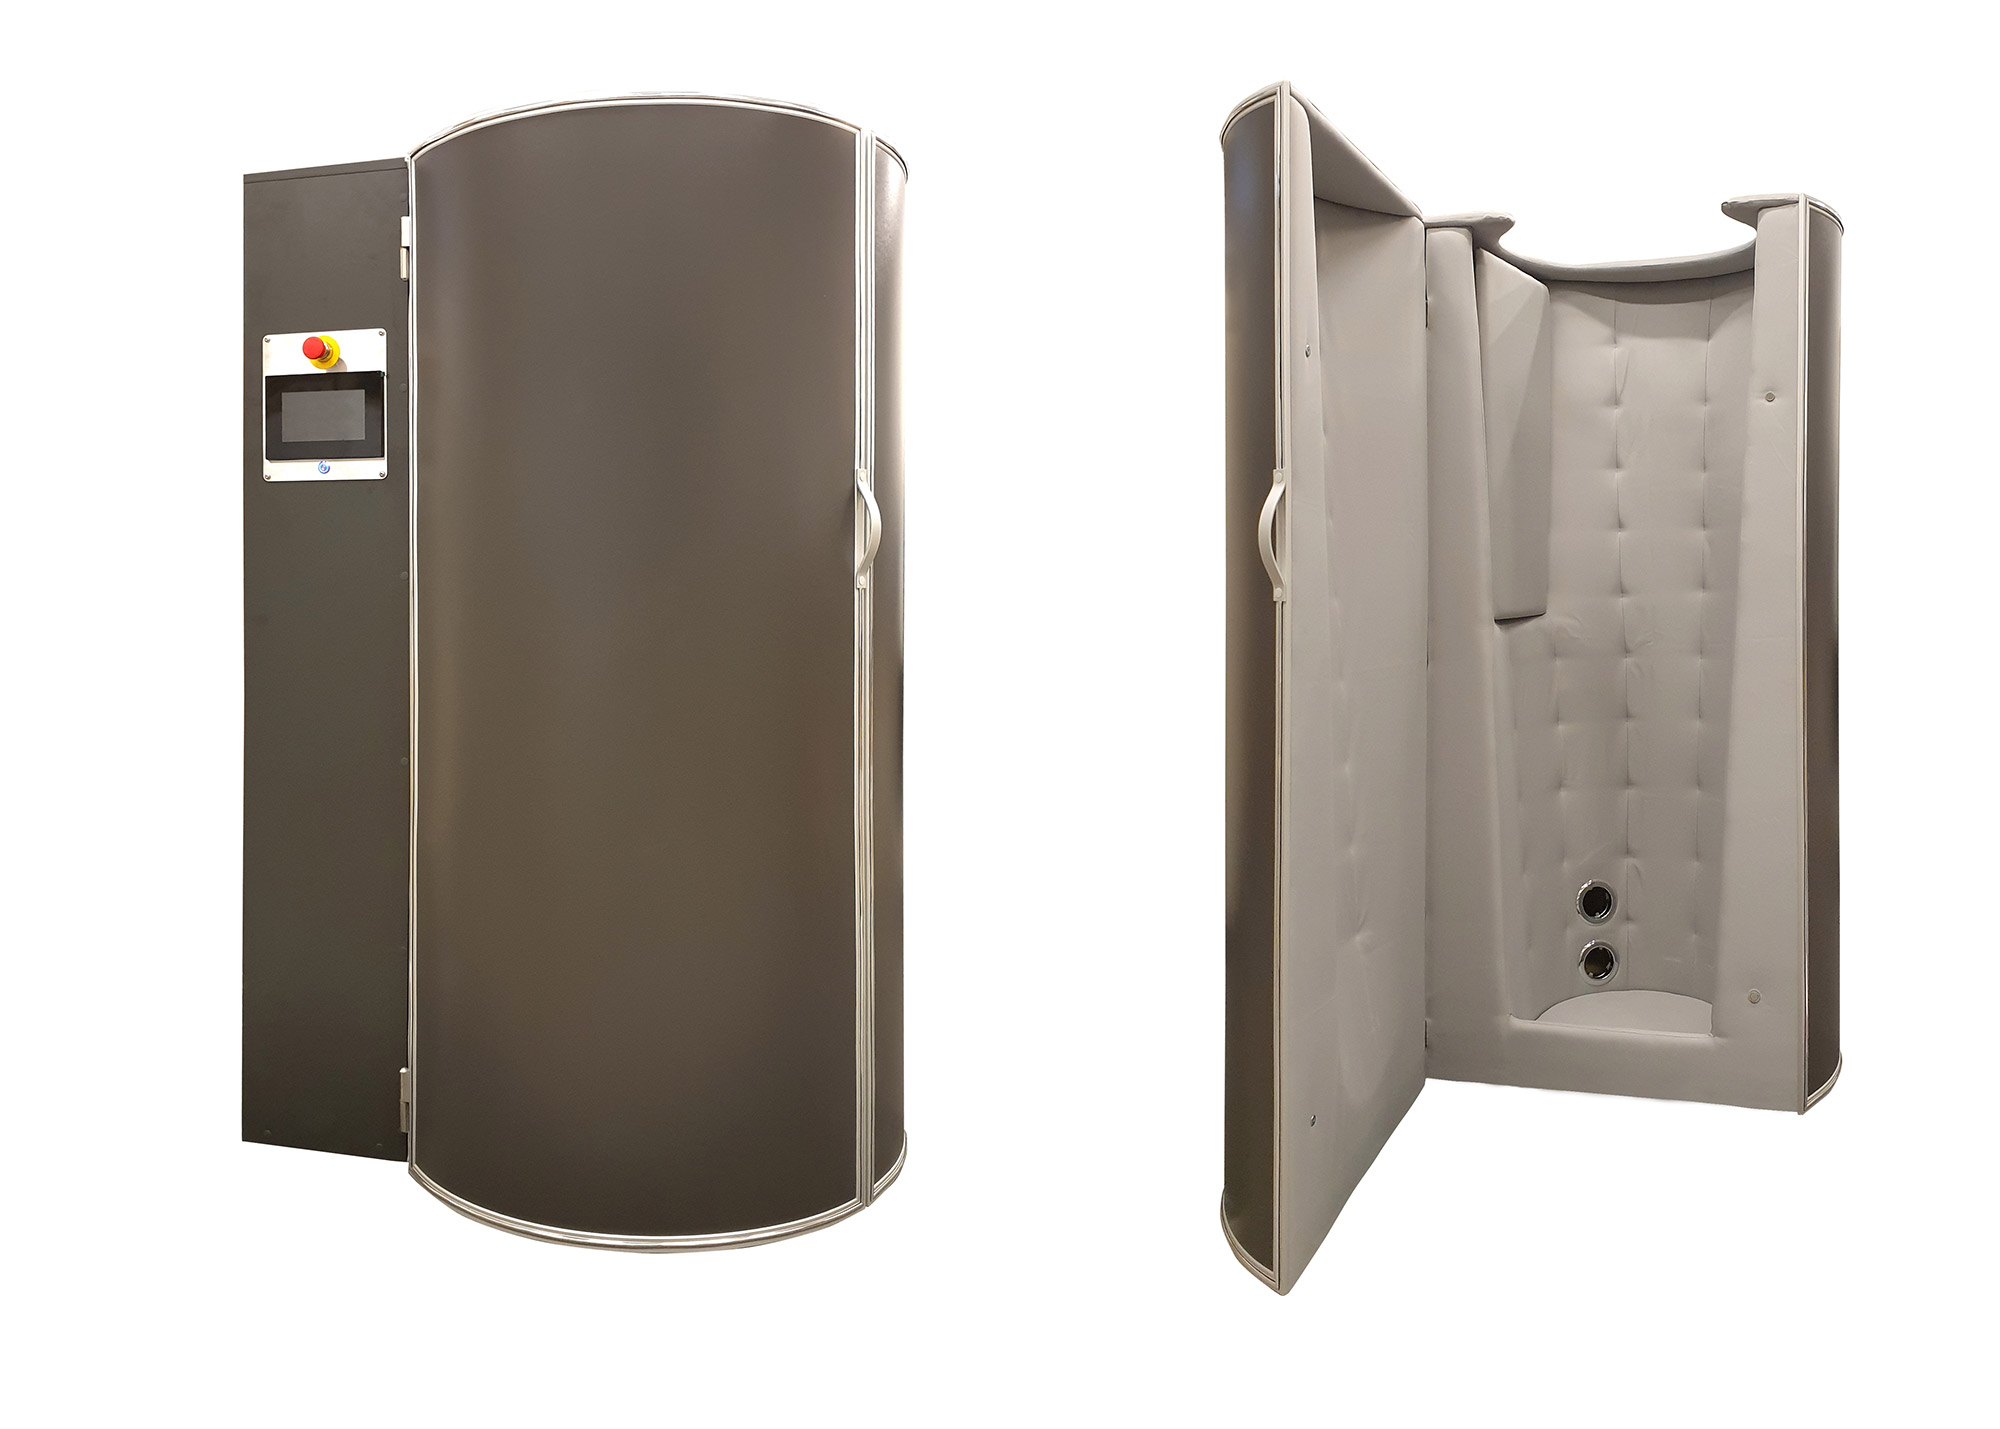 Cryosauna Cryomed Start for small businesses and for home use